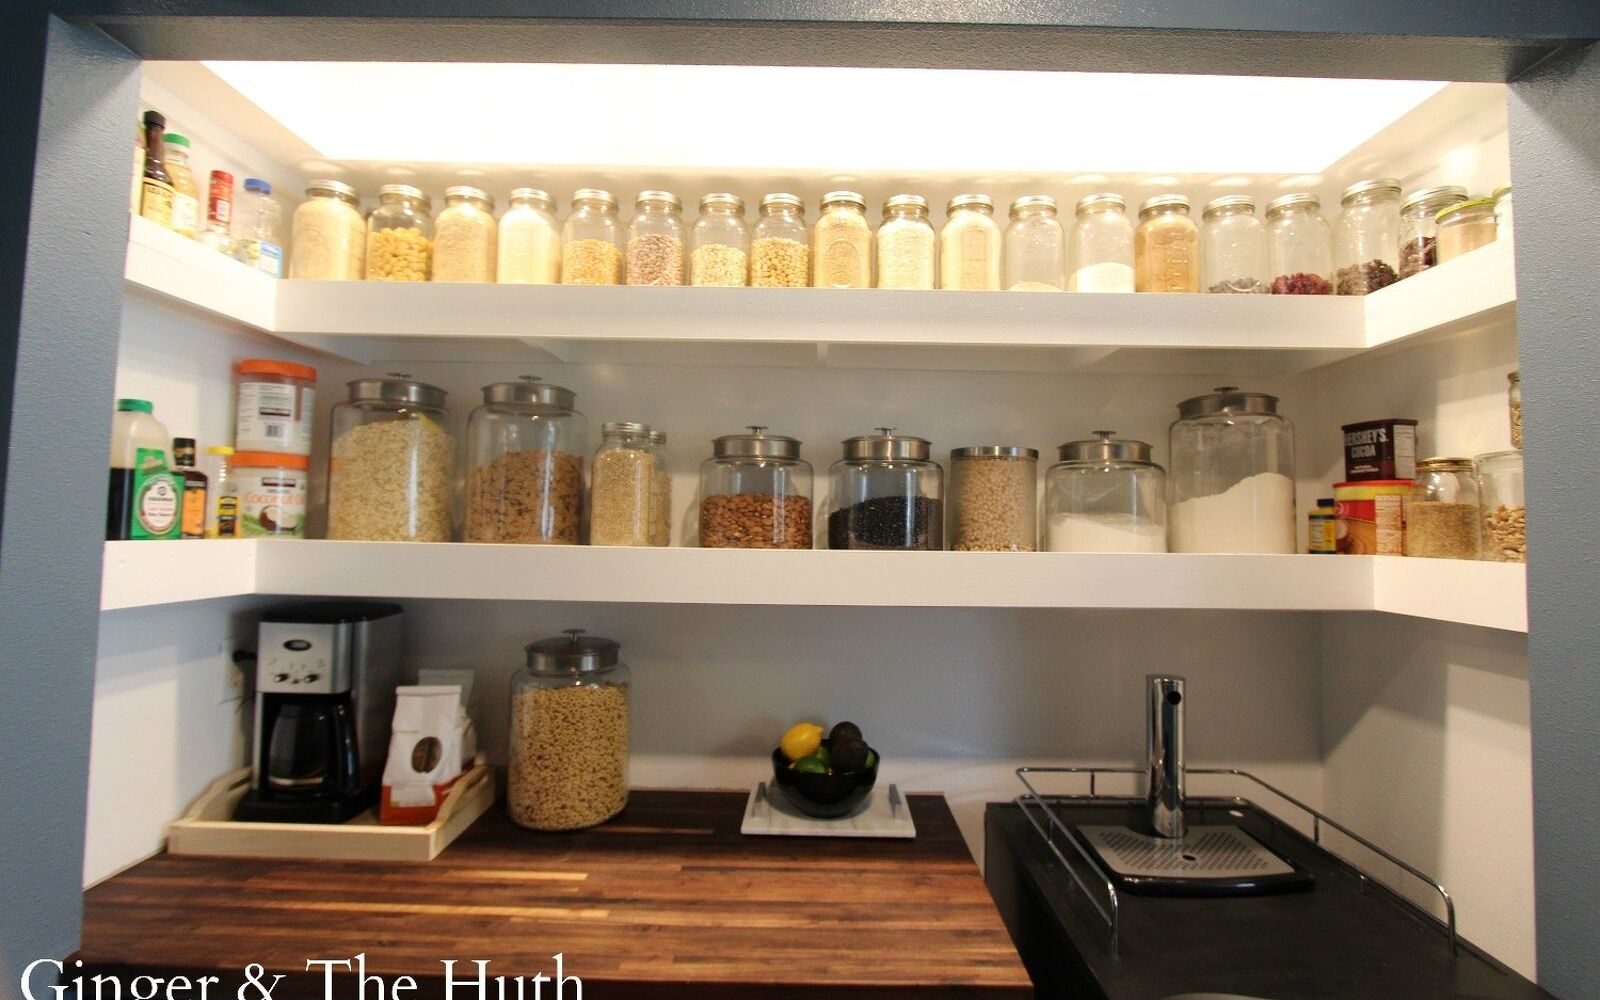 s 15 pinterest worthy pantries that eliminate search time for your favo, Replace Wire Shelving With Wood